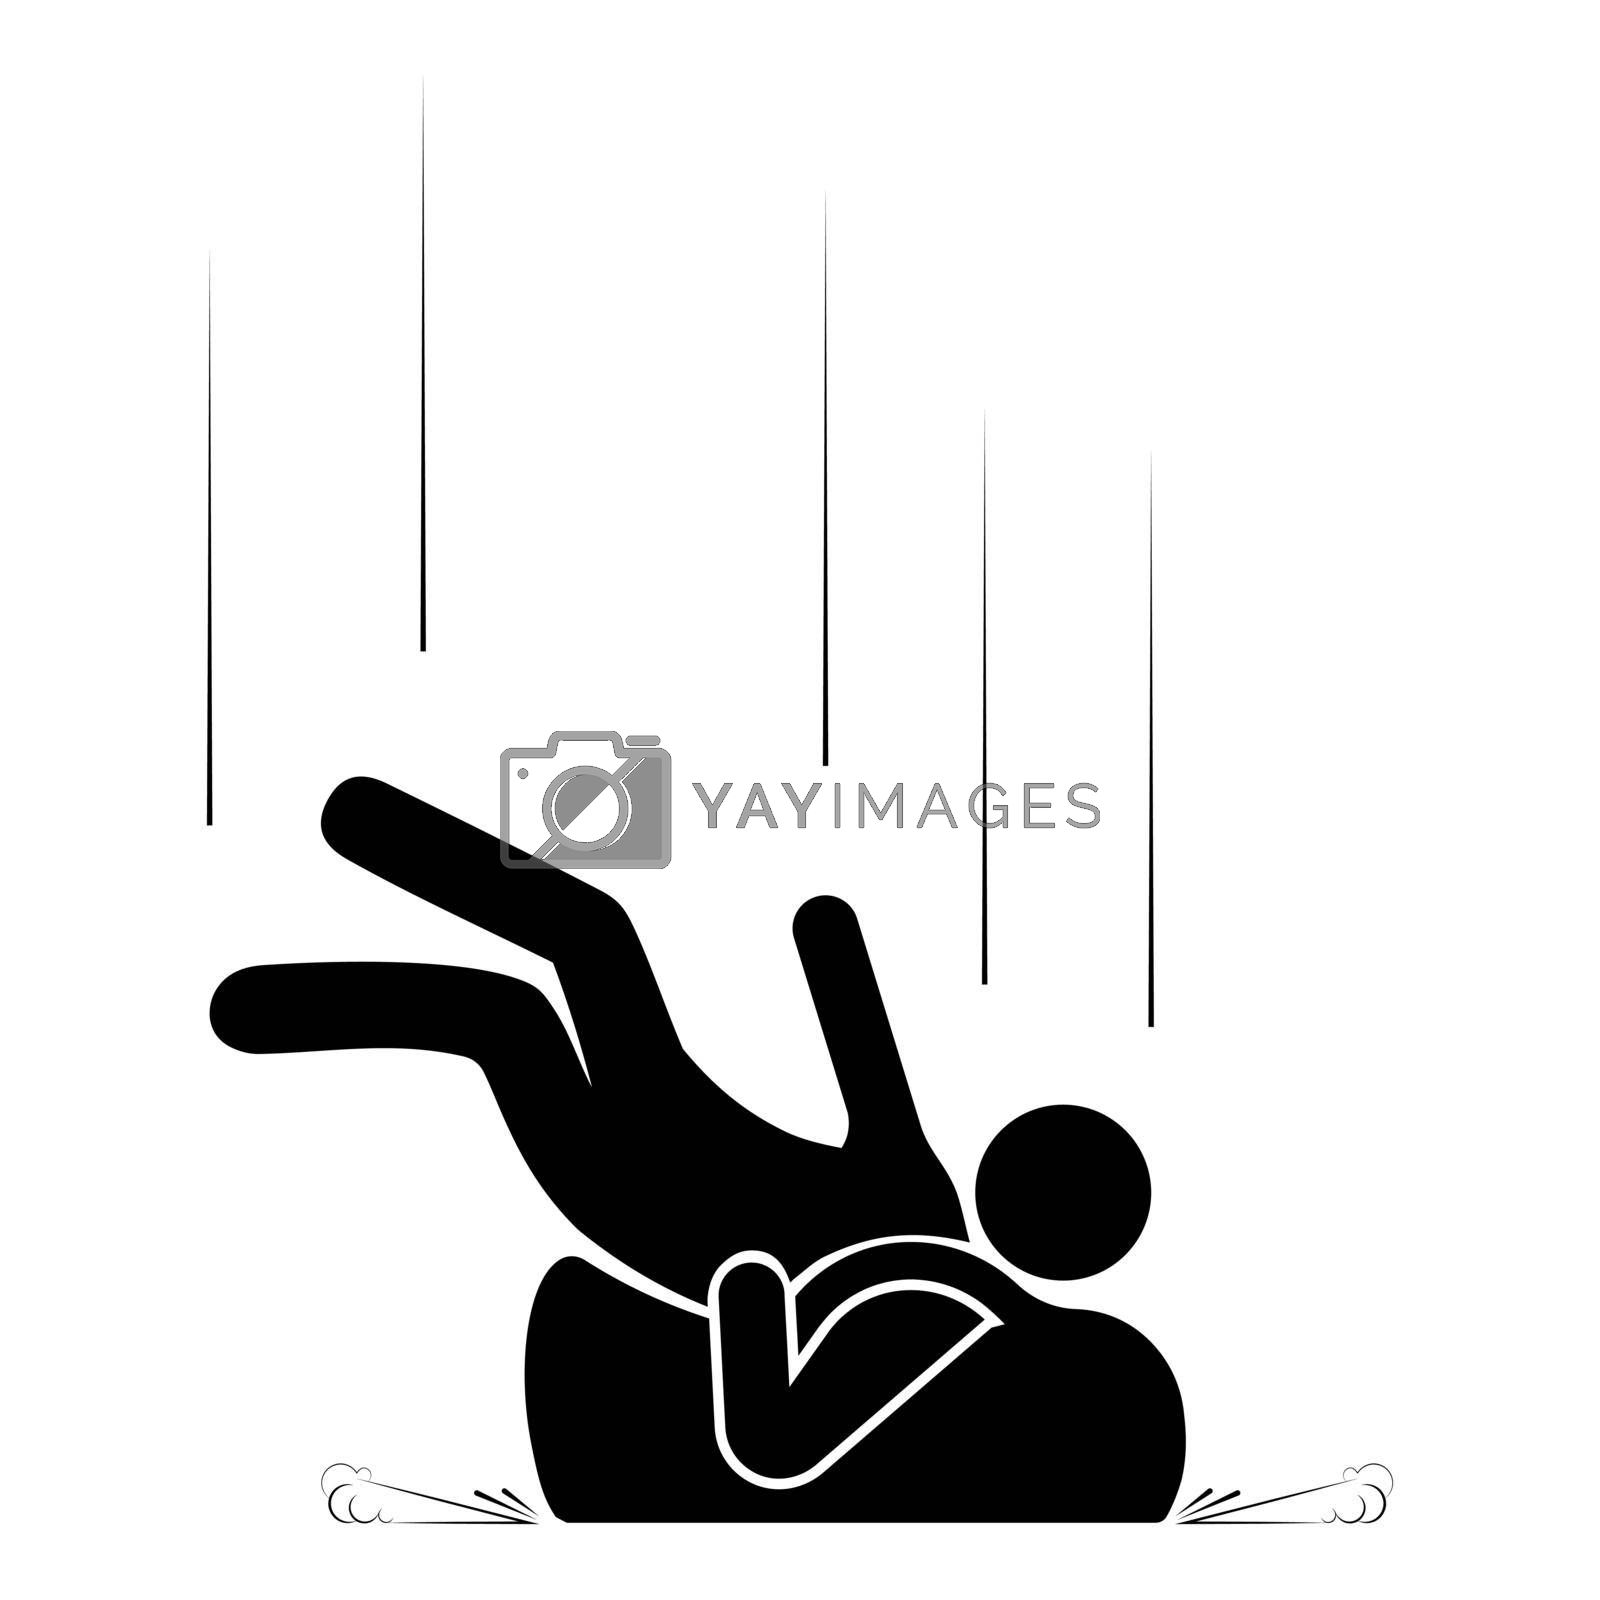 man with a big bag, a backpack fell on his back. Danger of falling during a trip to the mountains, mountaineering, travel. Isolated vector on white background